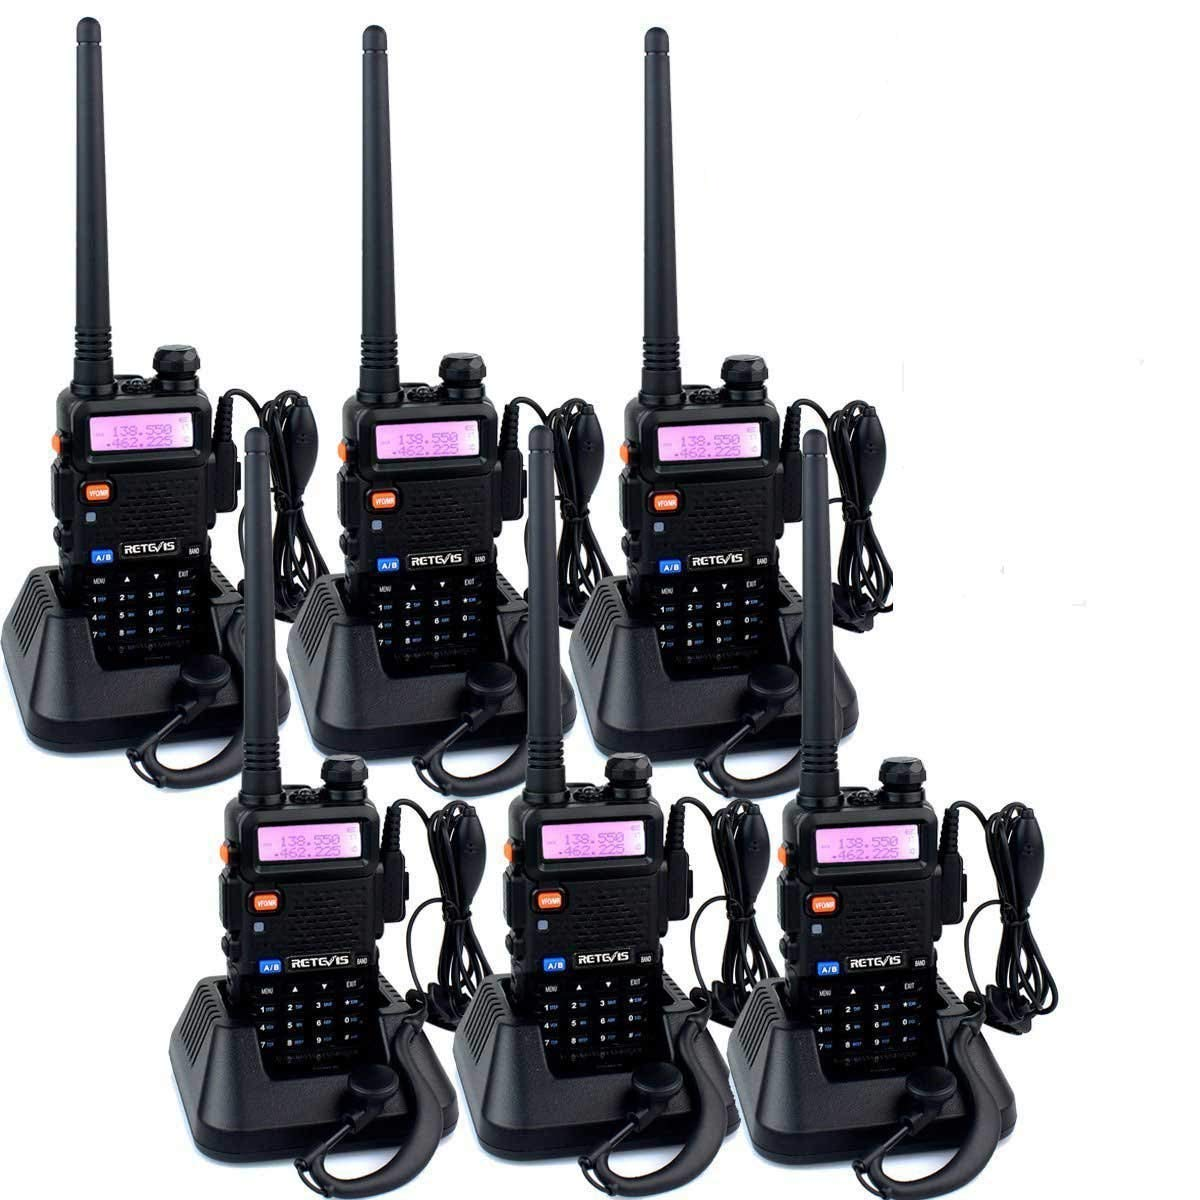 Retevis RT-5R 2 Way Radio 128CH FM UHF VHF Radio Dual Band Two-Way Radio Rechargeable Long Range Walkie Talkies for Adults 6 Pack